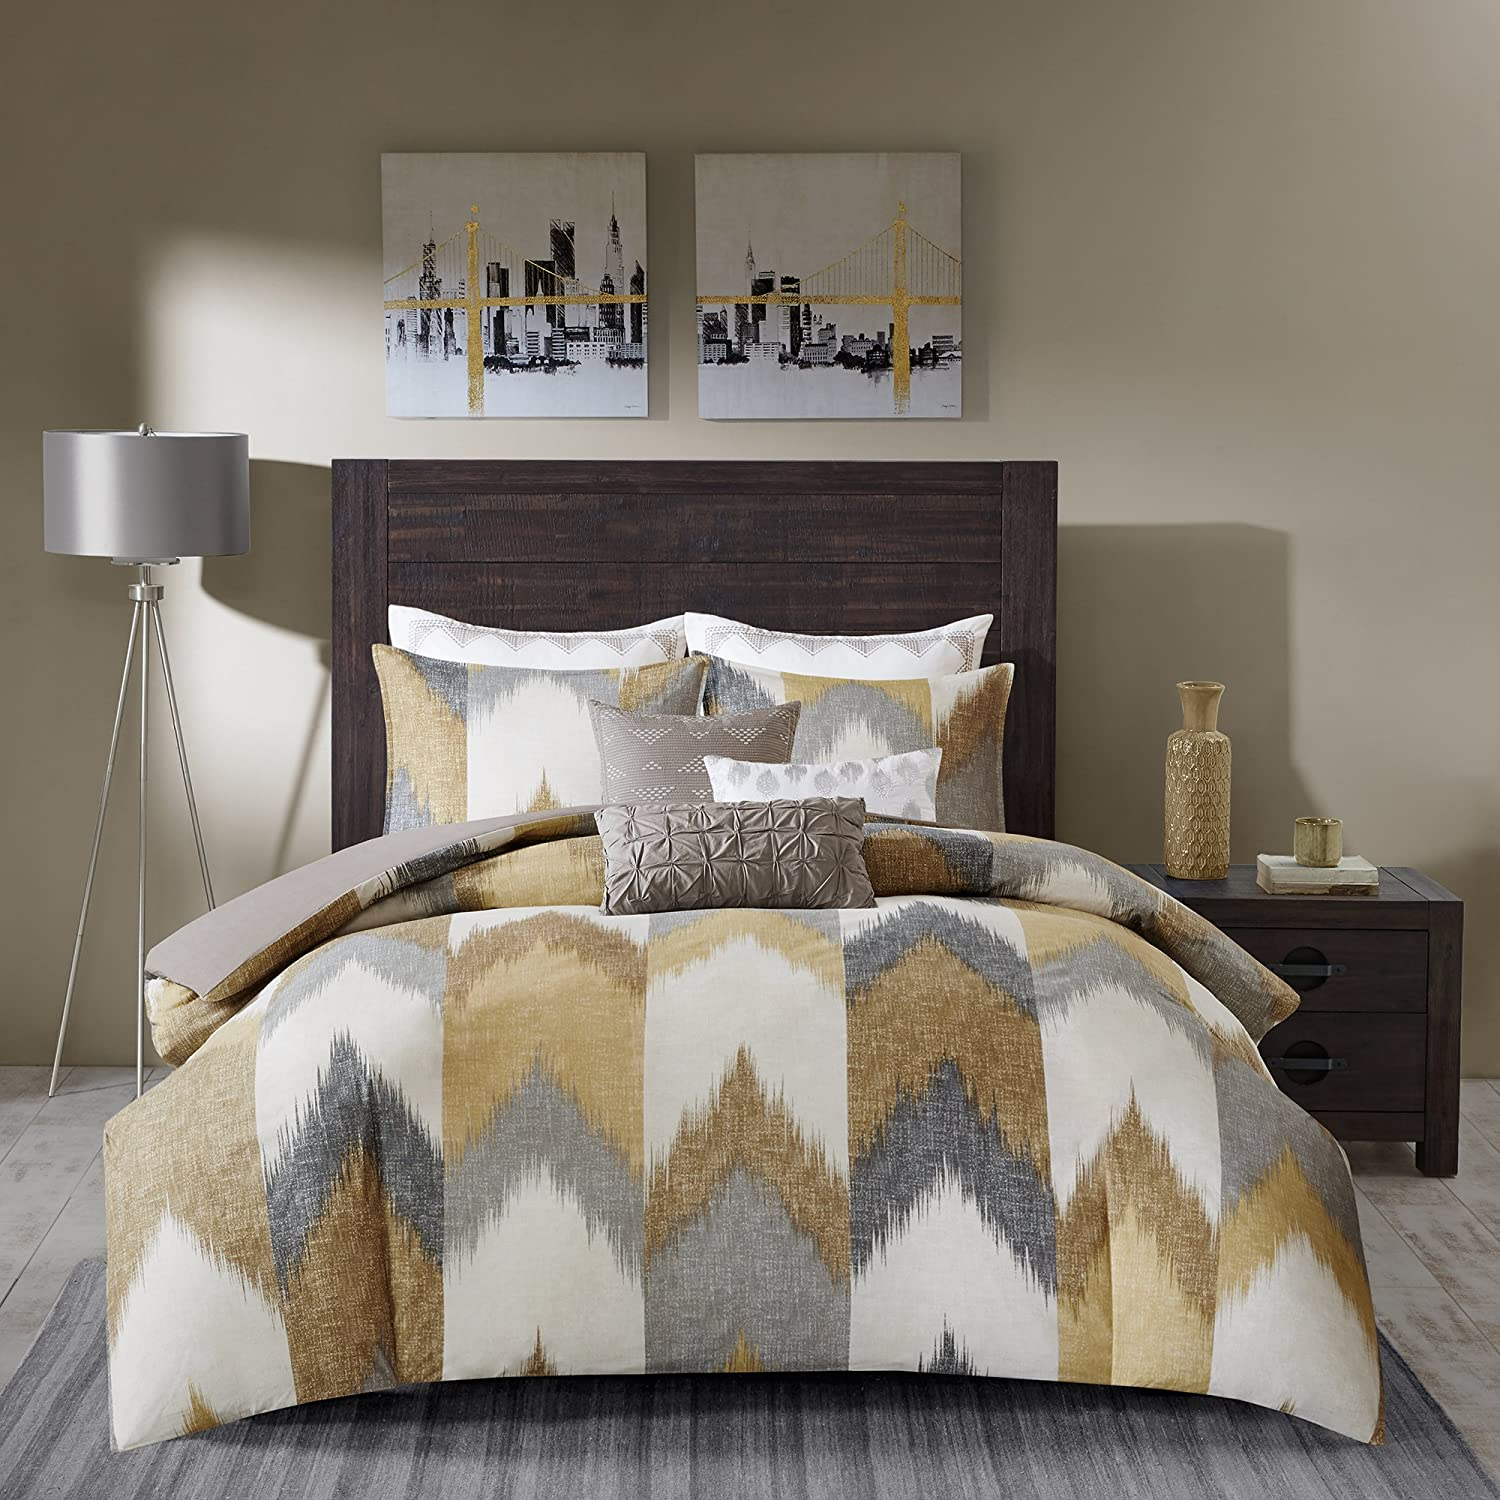 INK+IVY Alpine King/Cal King Size Bed Comforter Set - Yellow, Taupe, Grey, Ivory, Pieced Chevron – 3 Pieces Bedding Sets – 100% Cotton